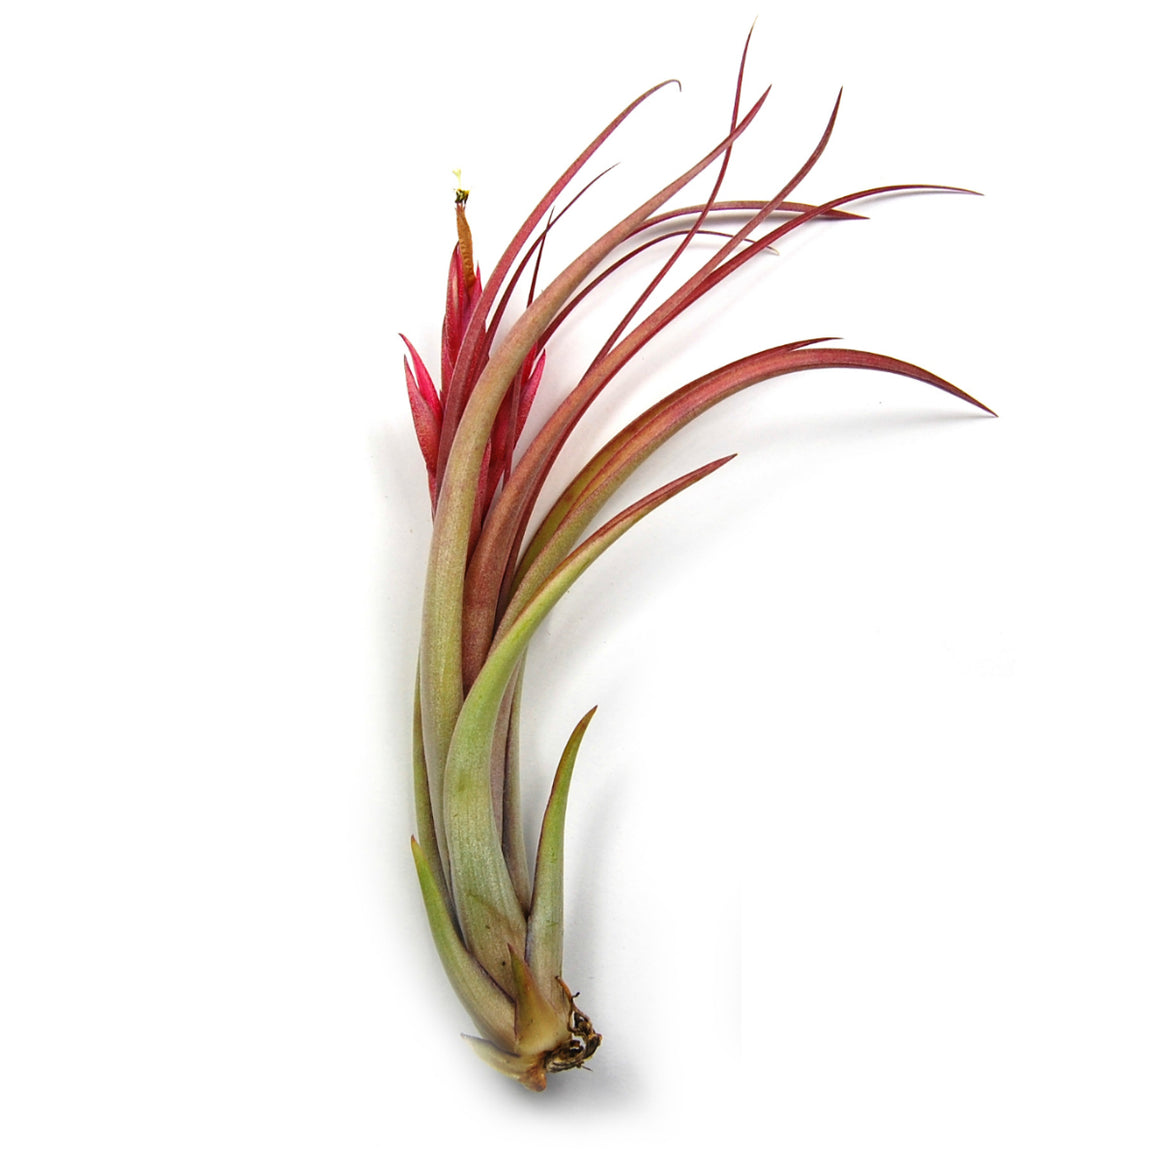 SALE - Circinata 'Paucifolia' Air Plants - Set of 10, 20, or 30 Air Plants - 60% Off